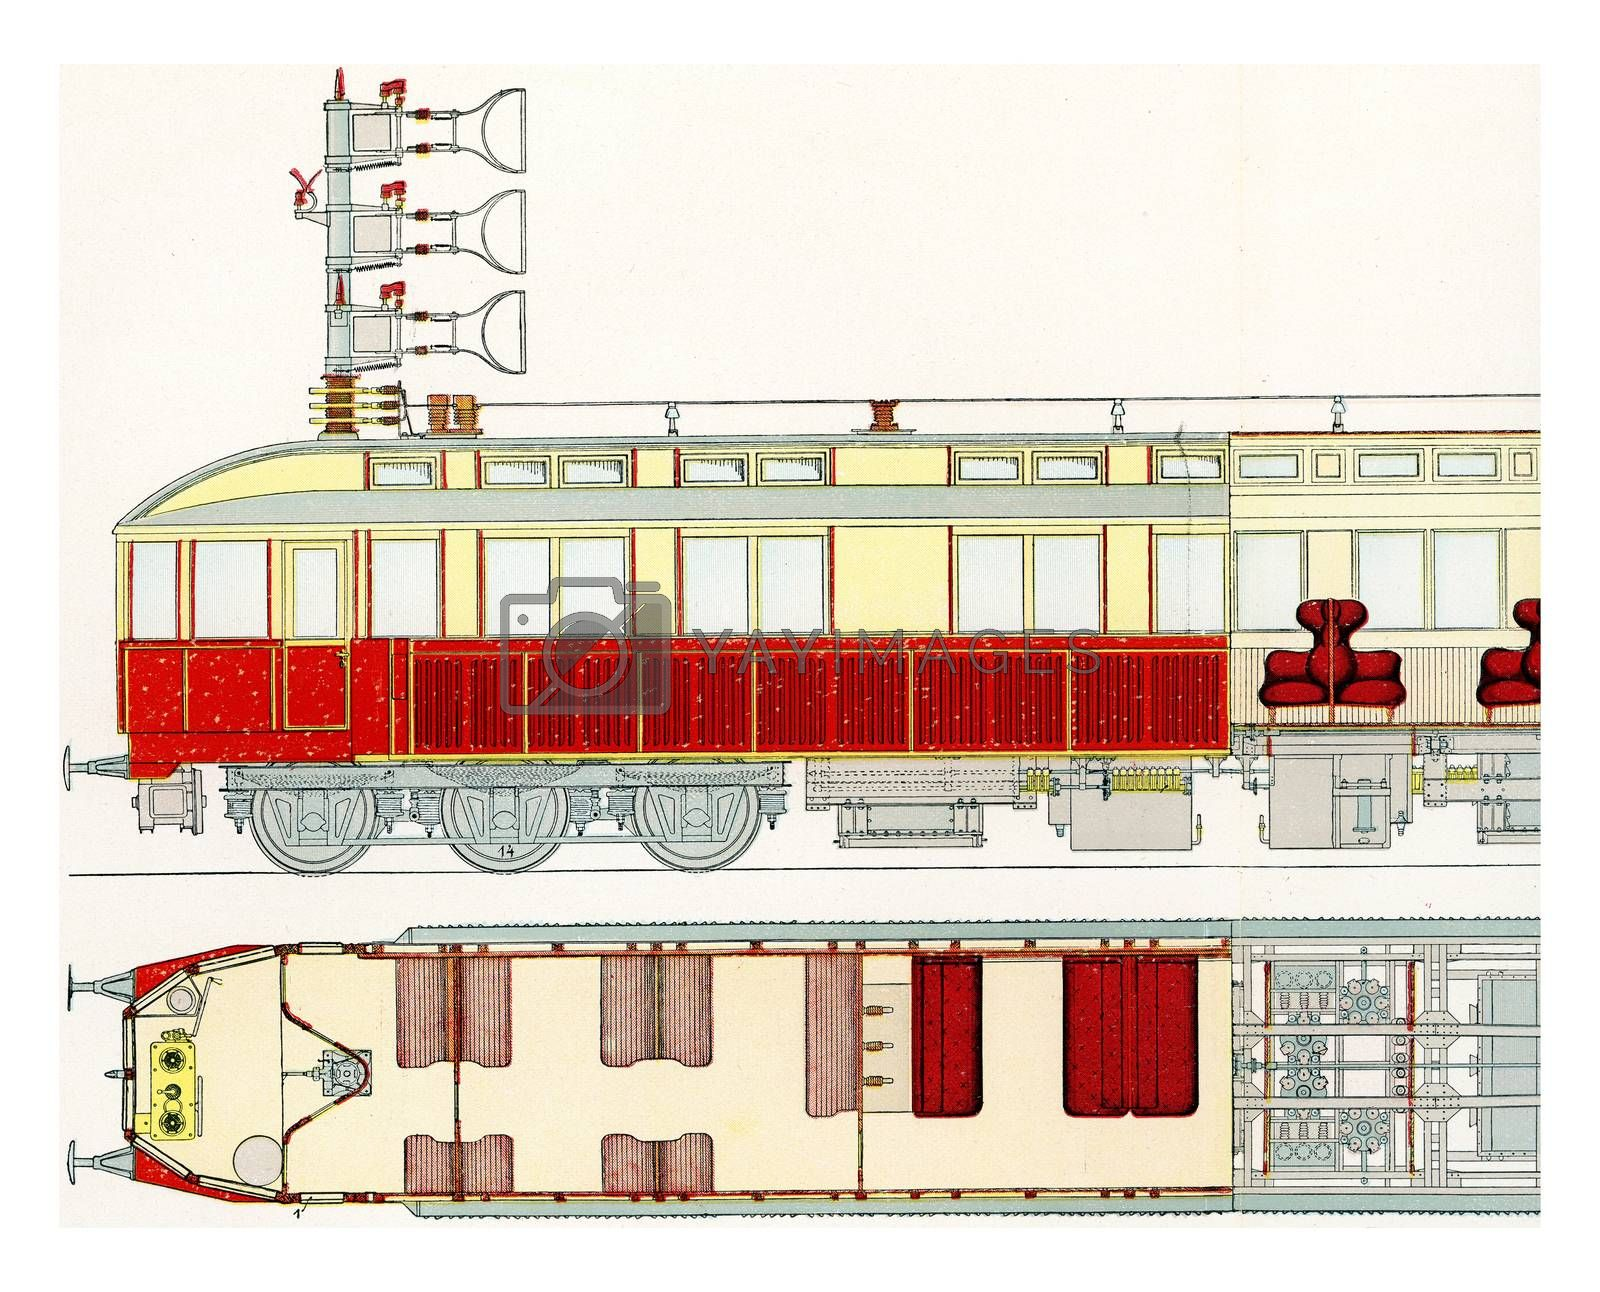 Section of a motor car fast test railway Marienfelde-Zossen, vintage engraved illustration. From the Universe and Humanity, 1910.